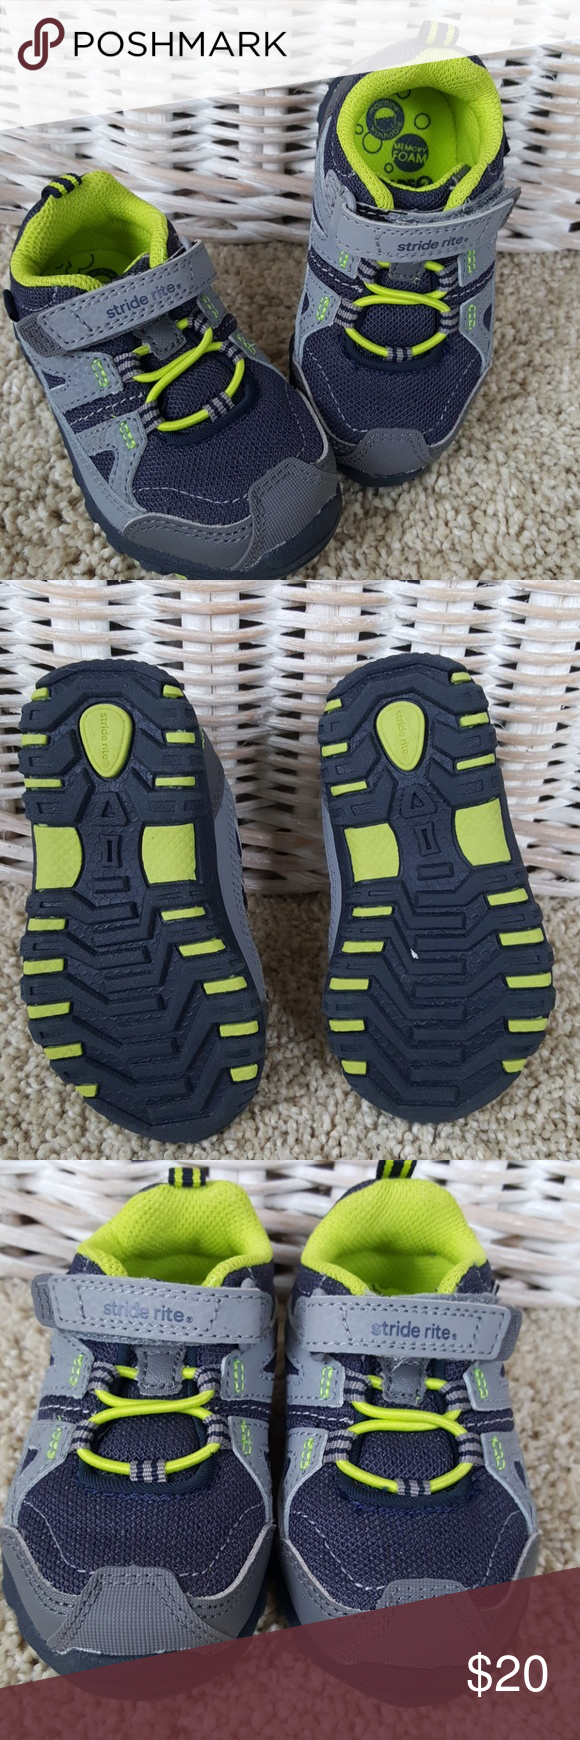 Stride Rite Slip On Sneaker Size 5.5 W NEW New without box toddler Stride Rite Made to Play. Memory foam insole. Leather uppers. 5.5 Wide. Easy on with velcro closure. From a smoke-free home. Stride Rite Shoes Sneakers